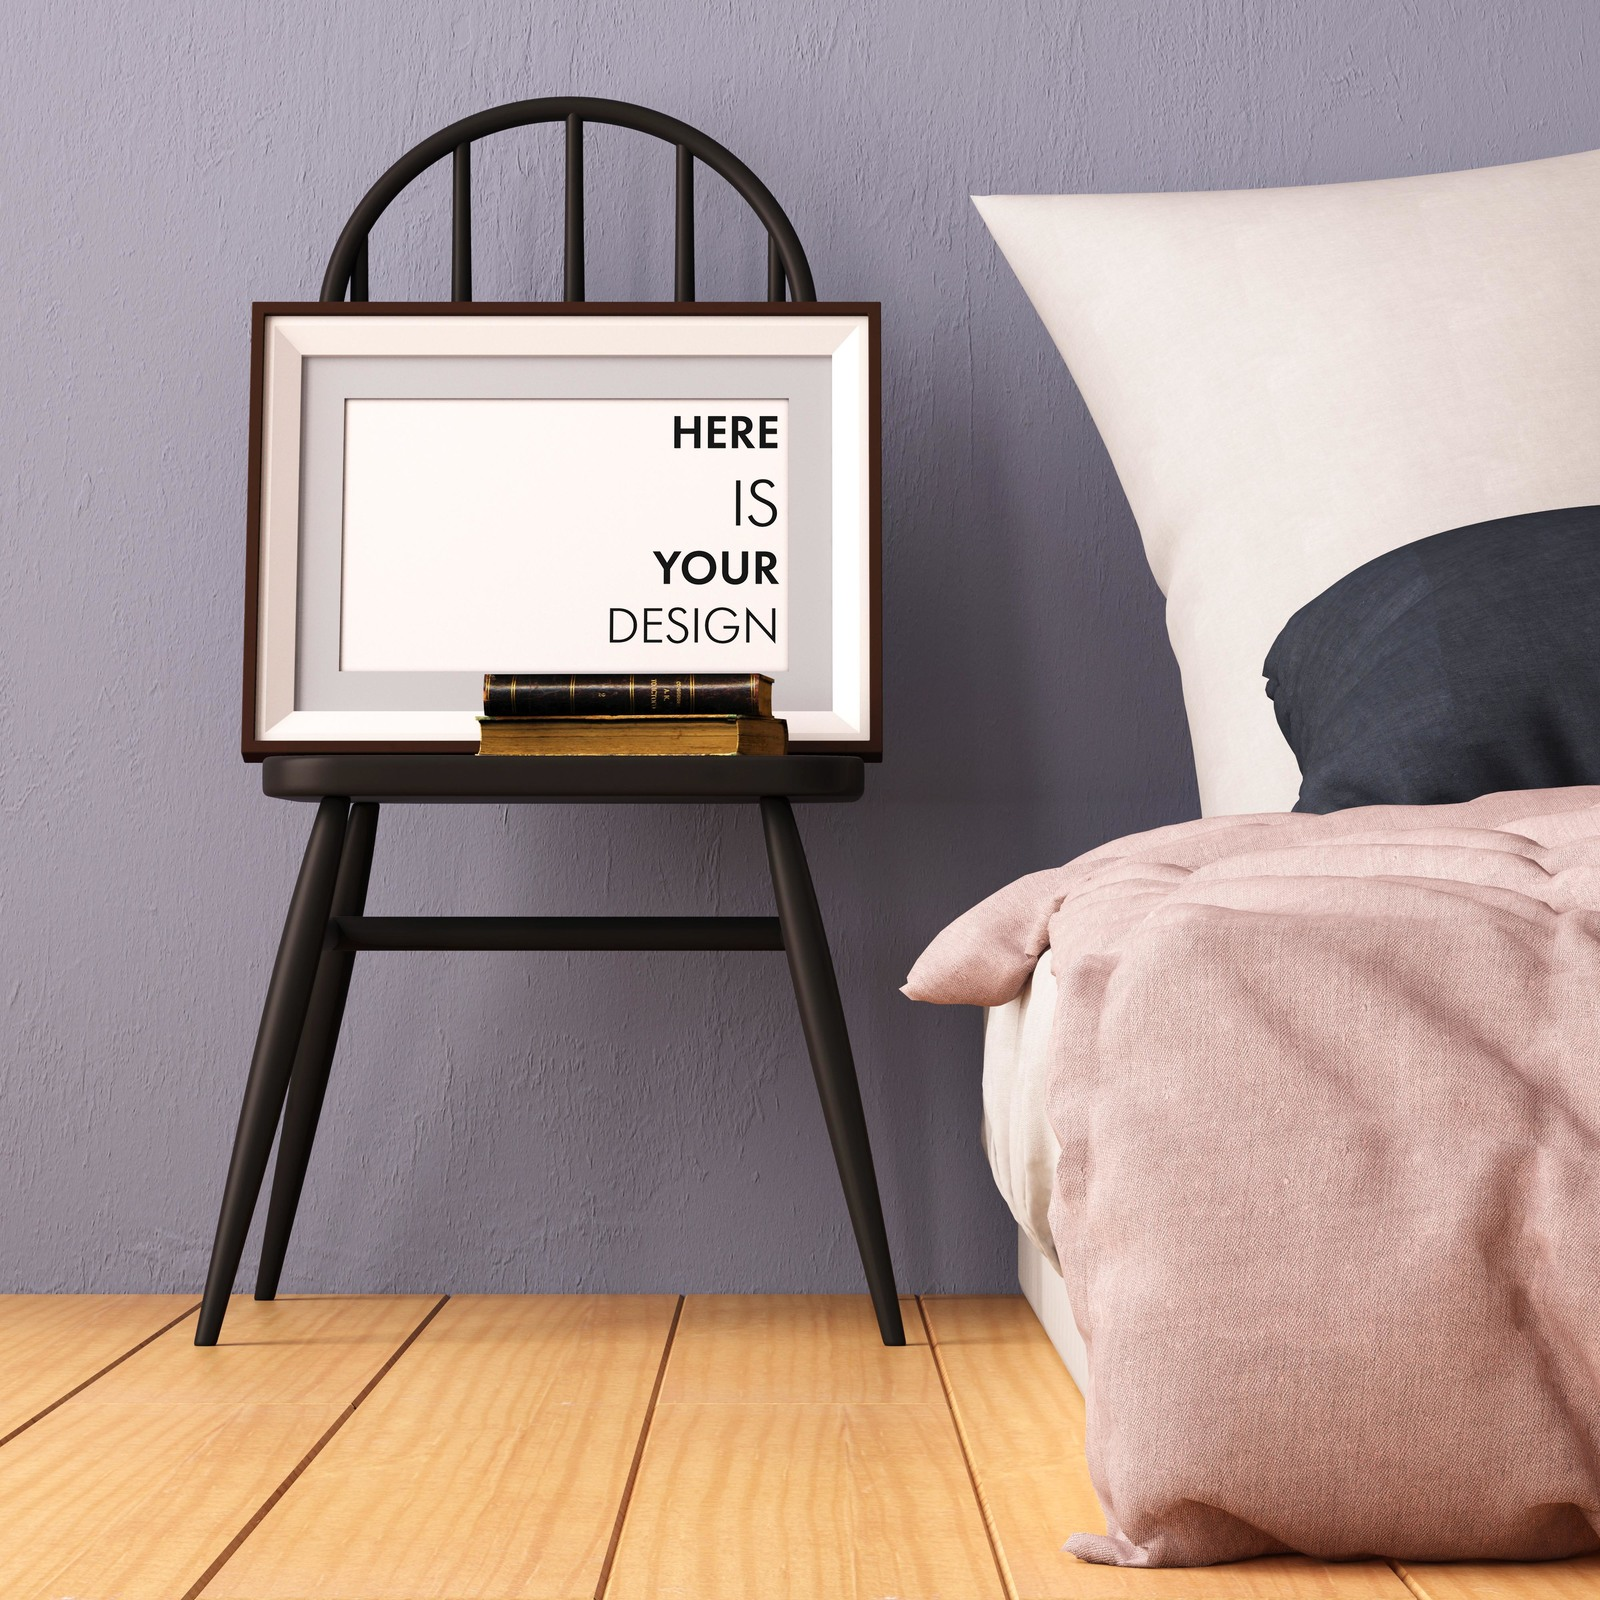 8 mockups posters in the bedroom